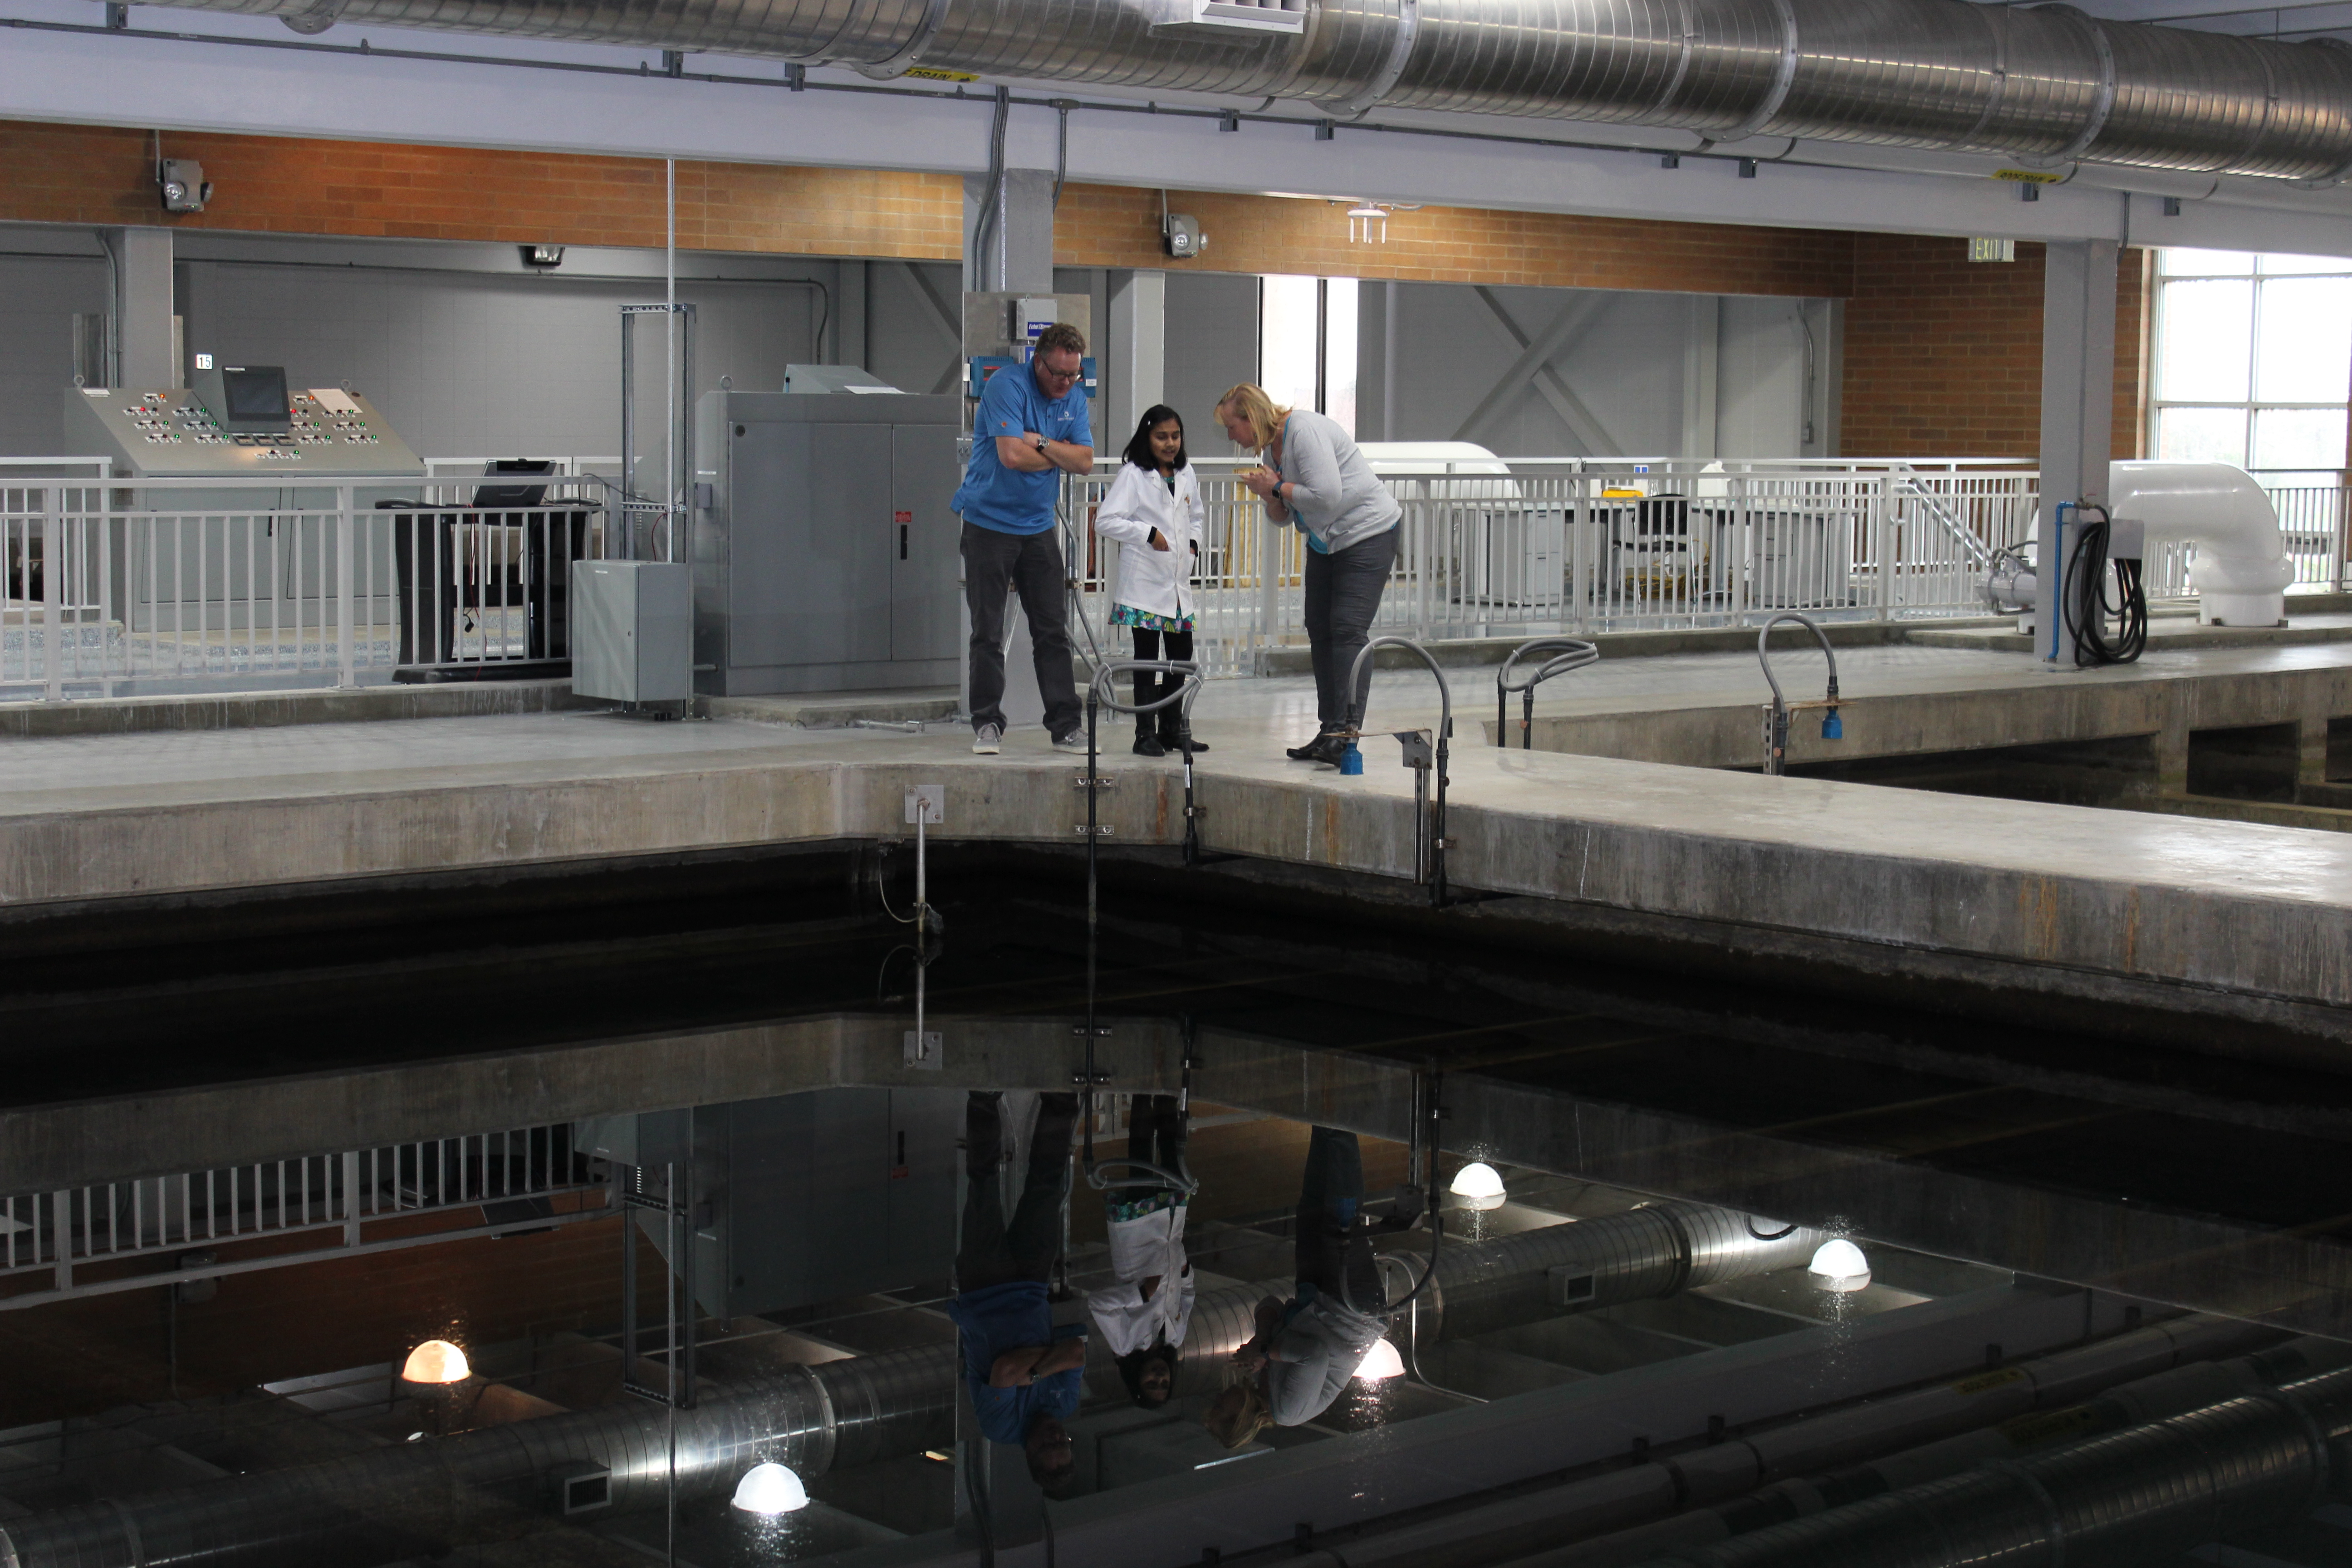 Denver Water's Marston Treatment Plant supervisor Patty Brubaker (right), explains the water treatment process to Rao during her visit.